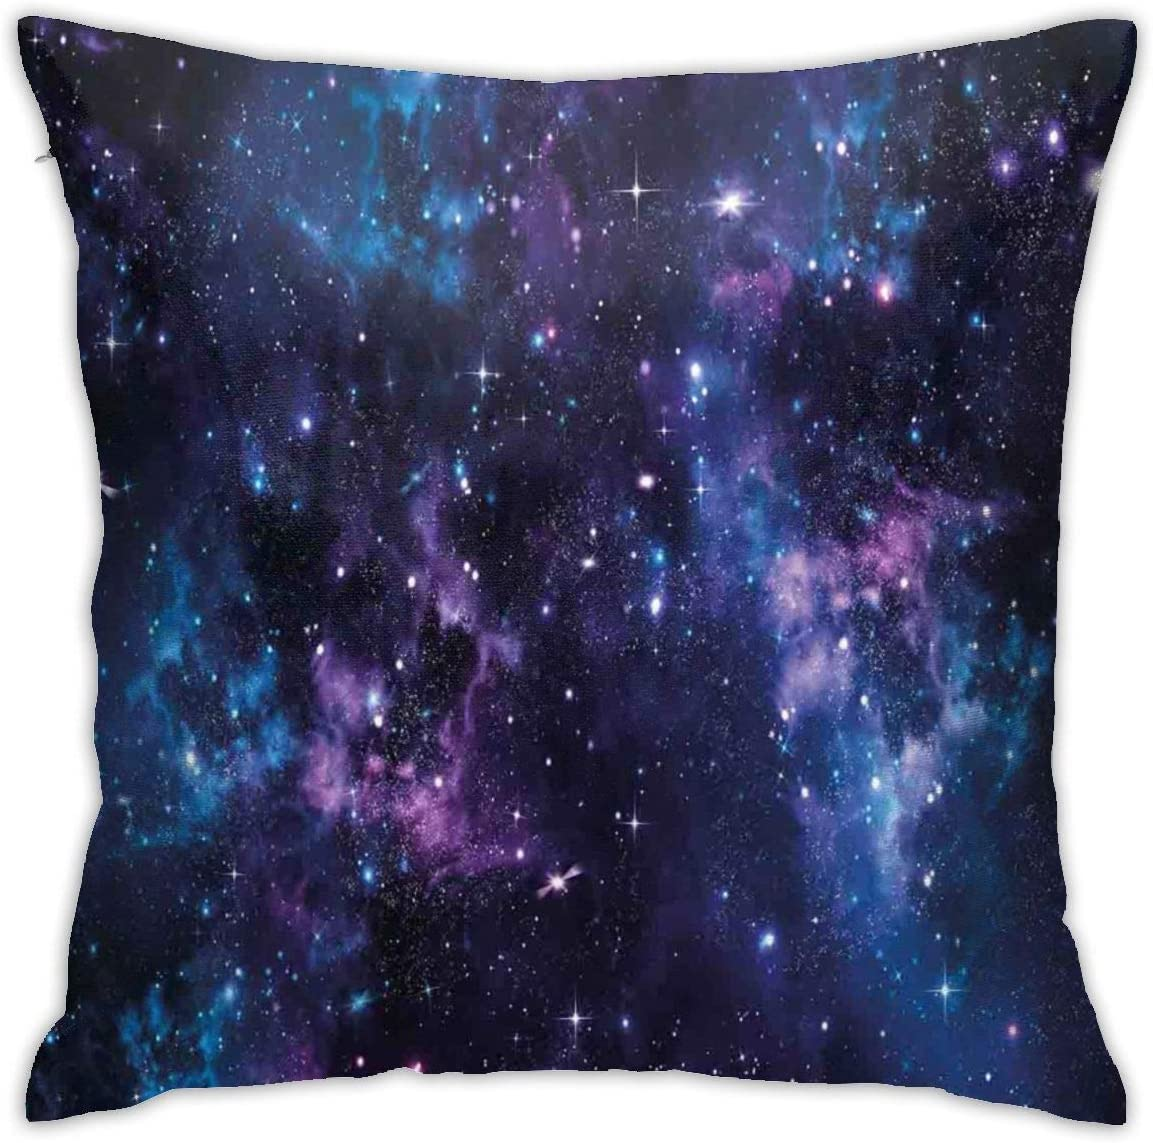 Judascepeda Home Pillowcase Space Mystical Sky with Star Clusters Cosmos Nebula Celestial Scenery Artwork Dark Purple and Blue Decorative Square Accent Pillow Case with 18 X 18 Inches